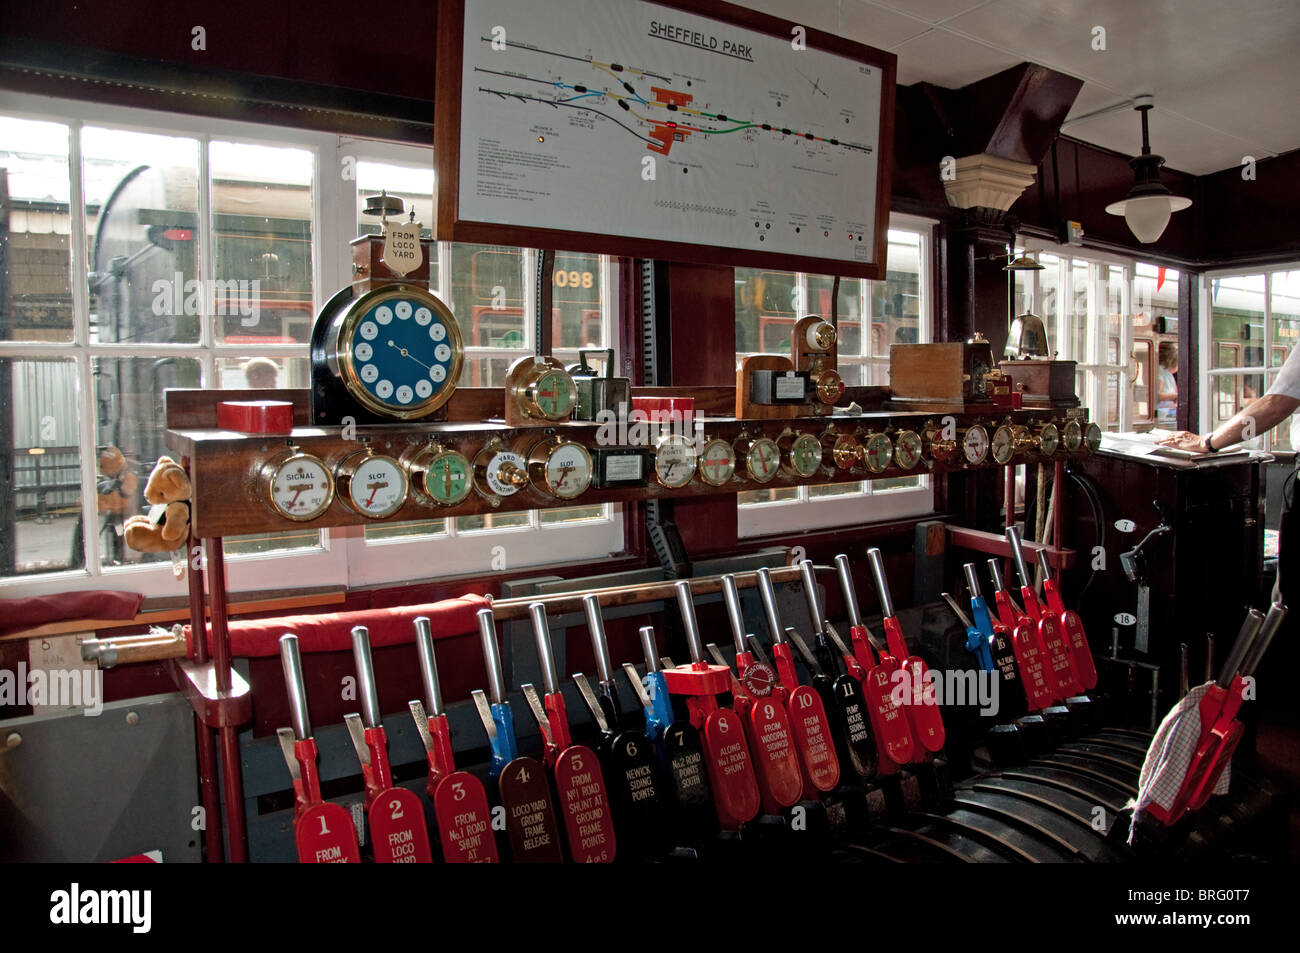 Signal Box Control Levers - Stock Image